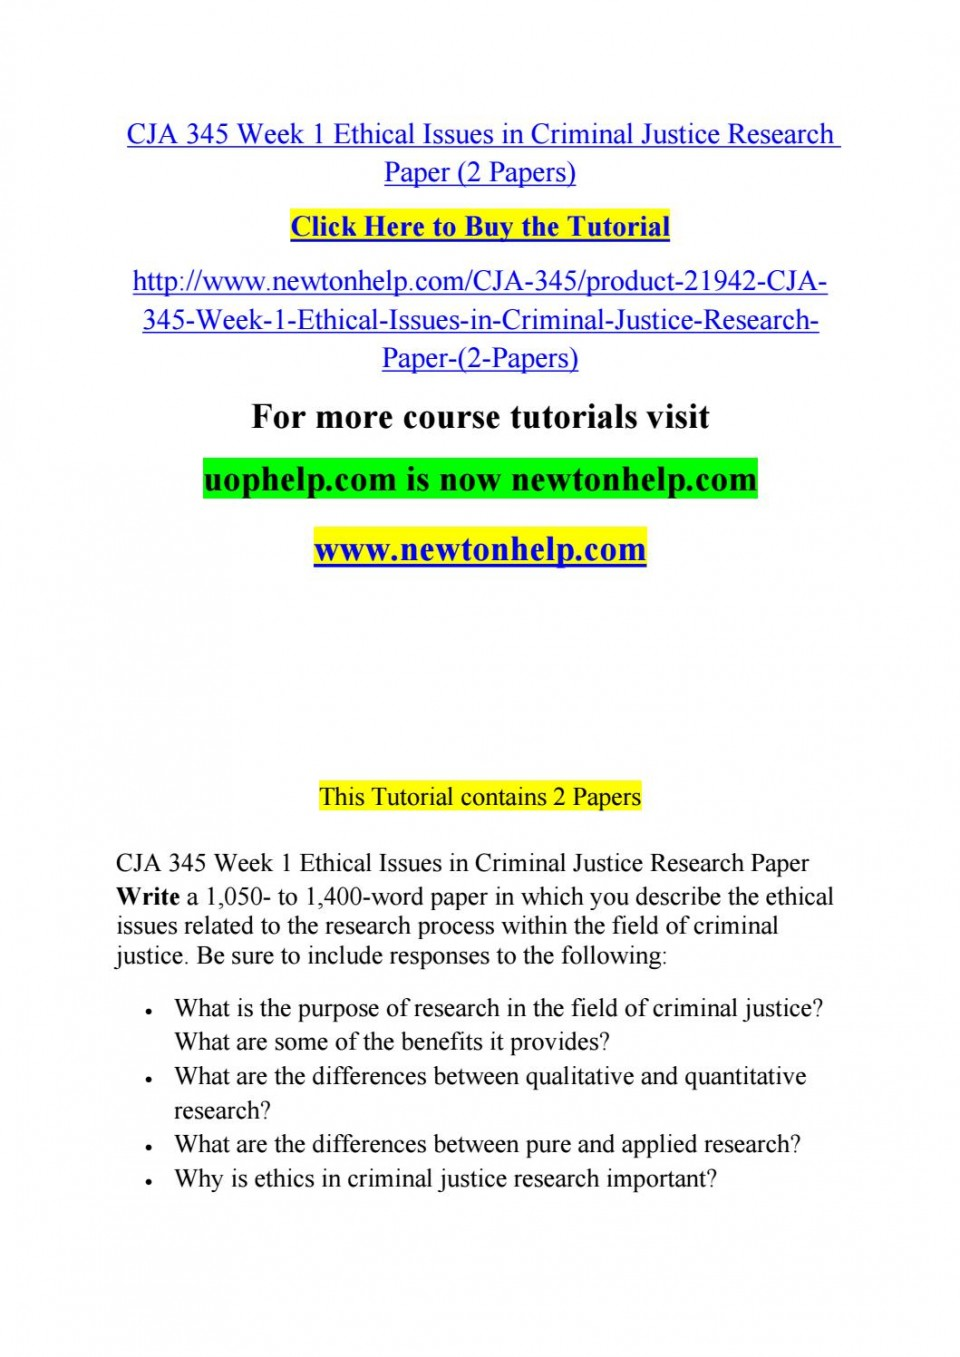 009 Page 1 Research Paper Criminal Justice Formidable Papers Free Sample 960